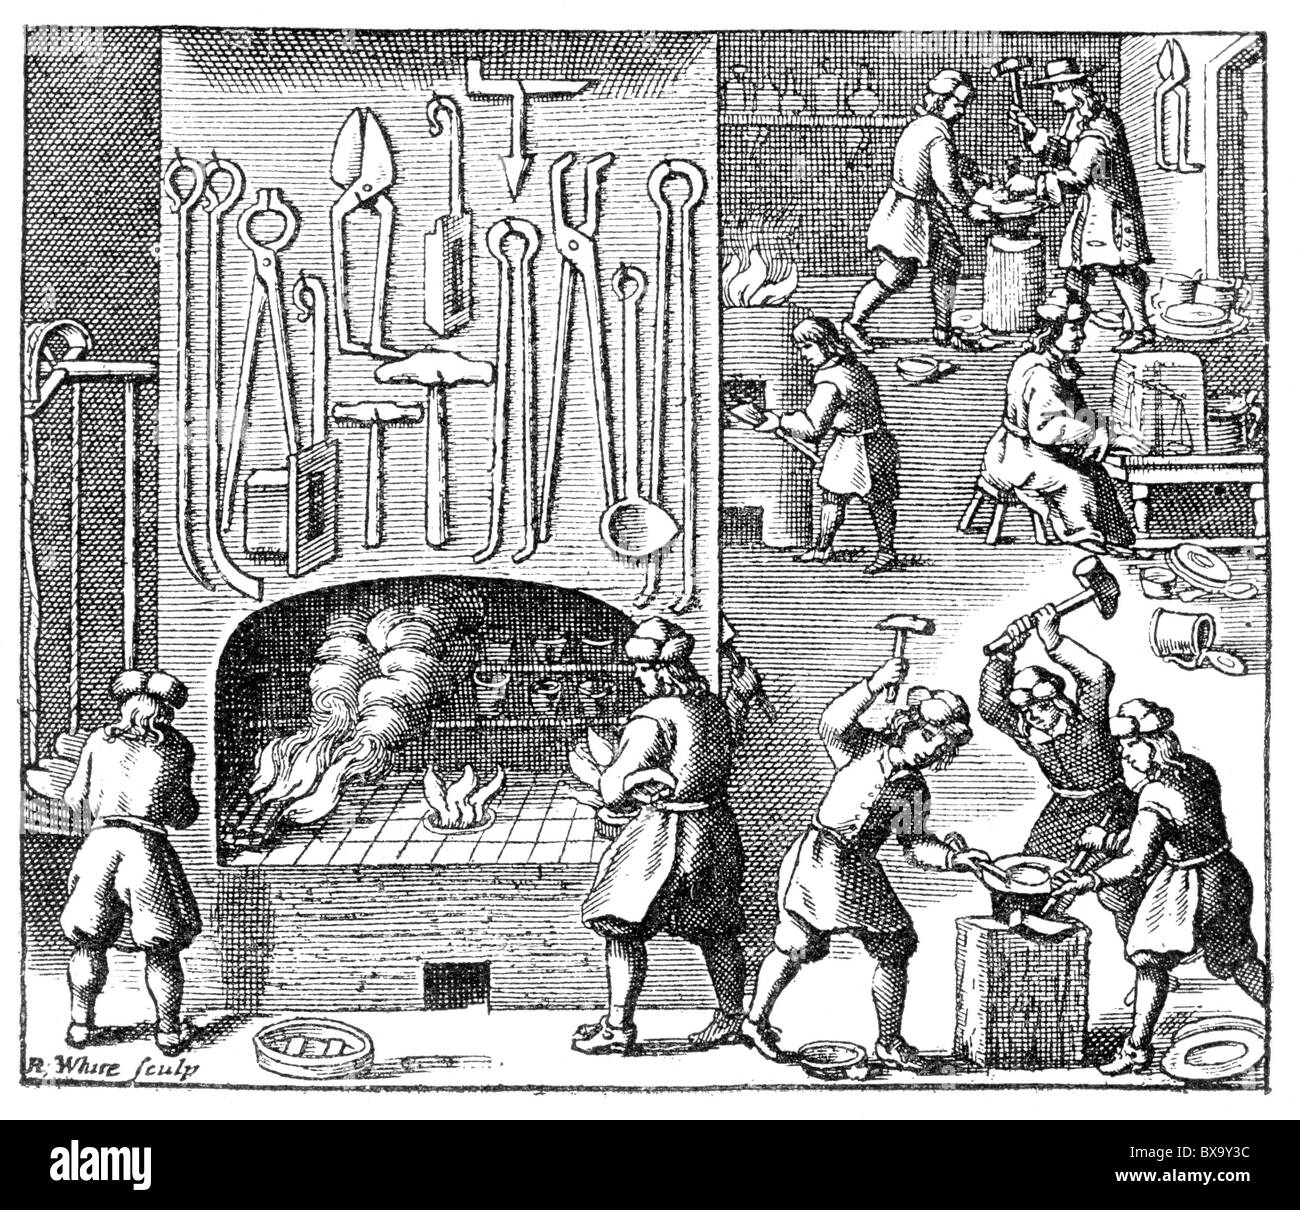 Emblems of the Silversmiths Craft, 1700; Black and White Illustration; - Stock Image